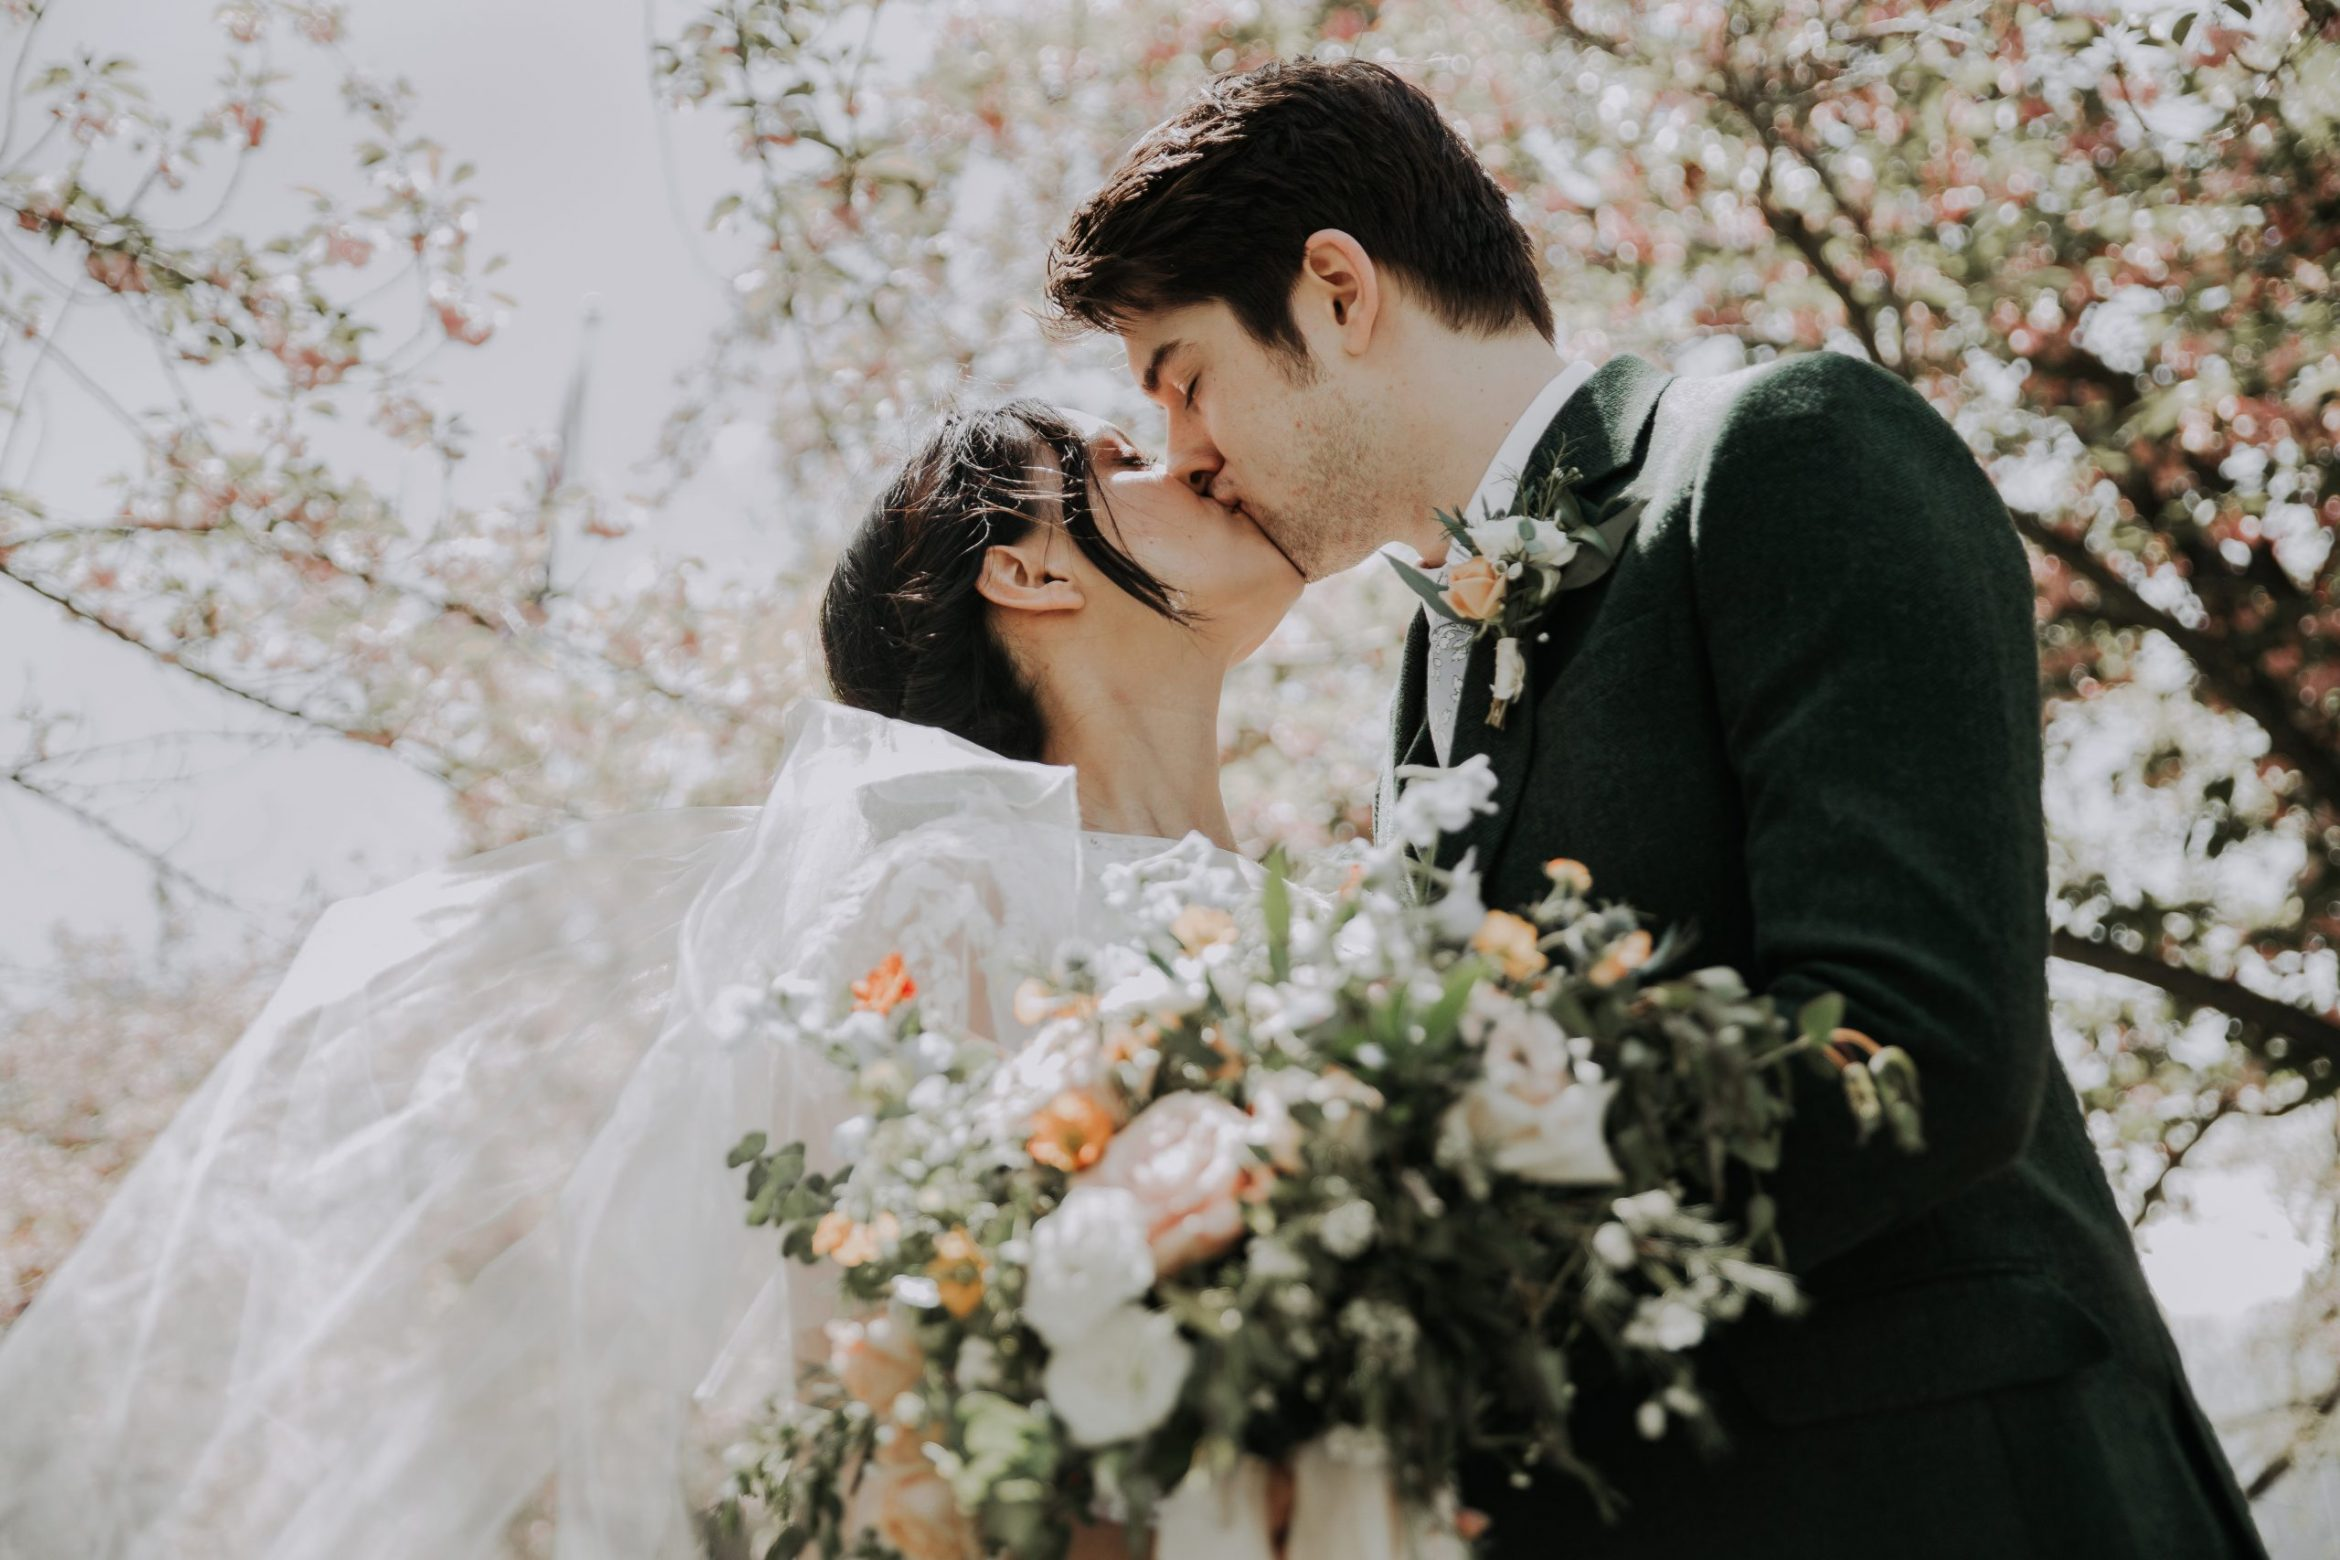 Bride and groom kiss at spring wedding